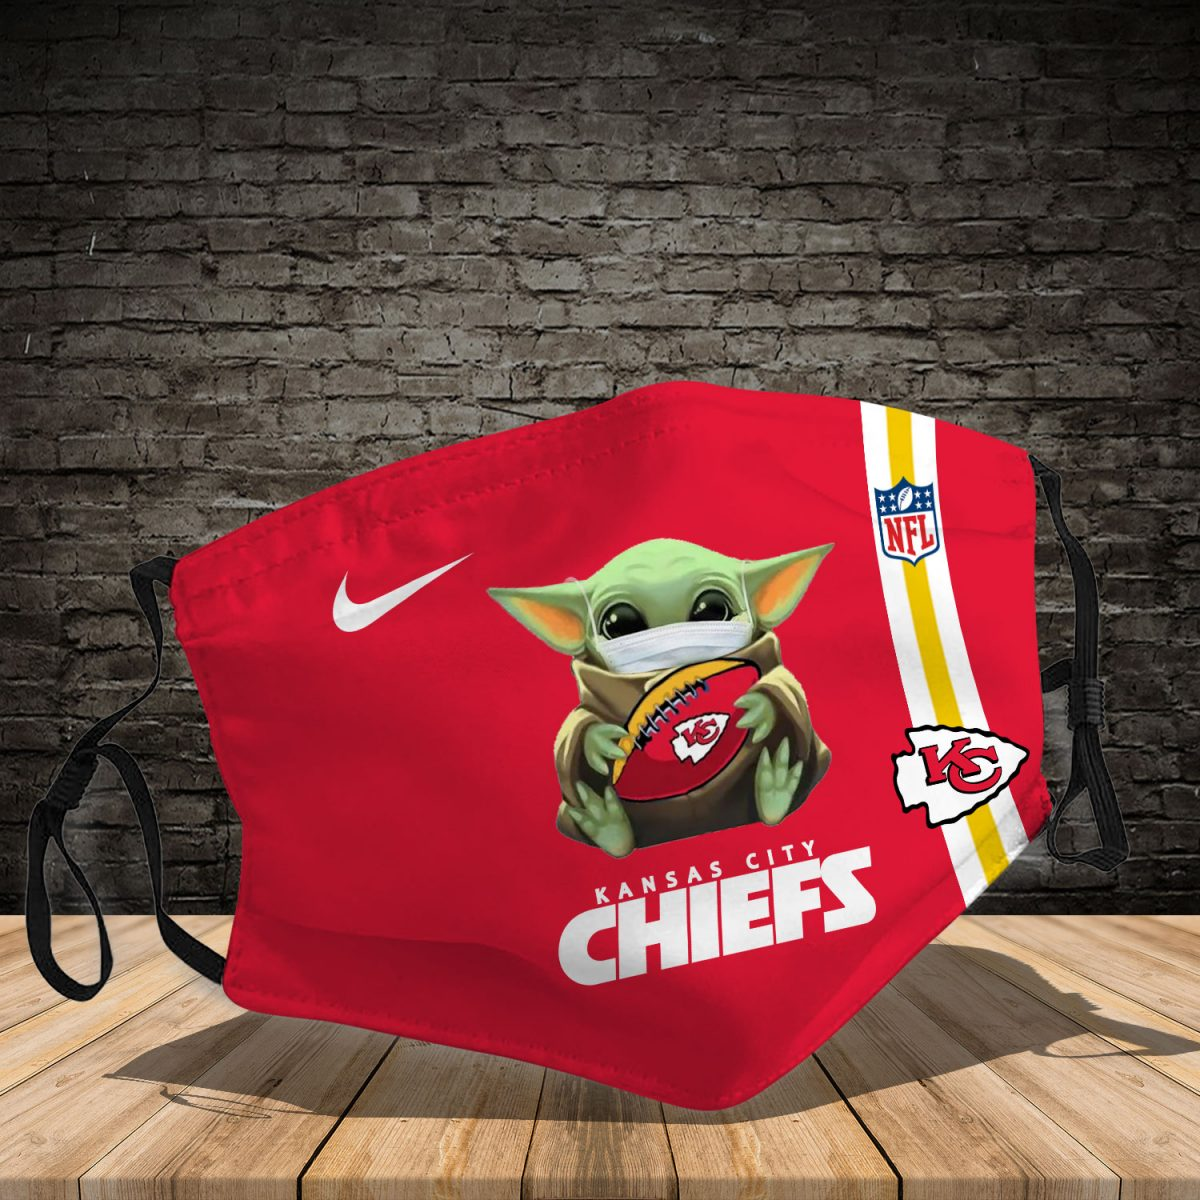 Baby yoda kansas city chiefs full printing face mask 4